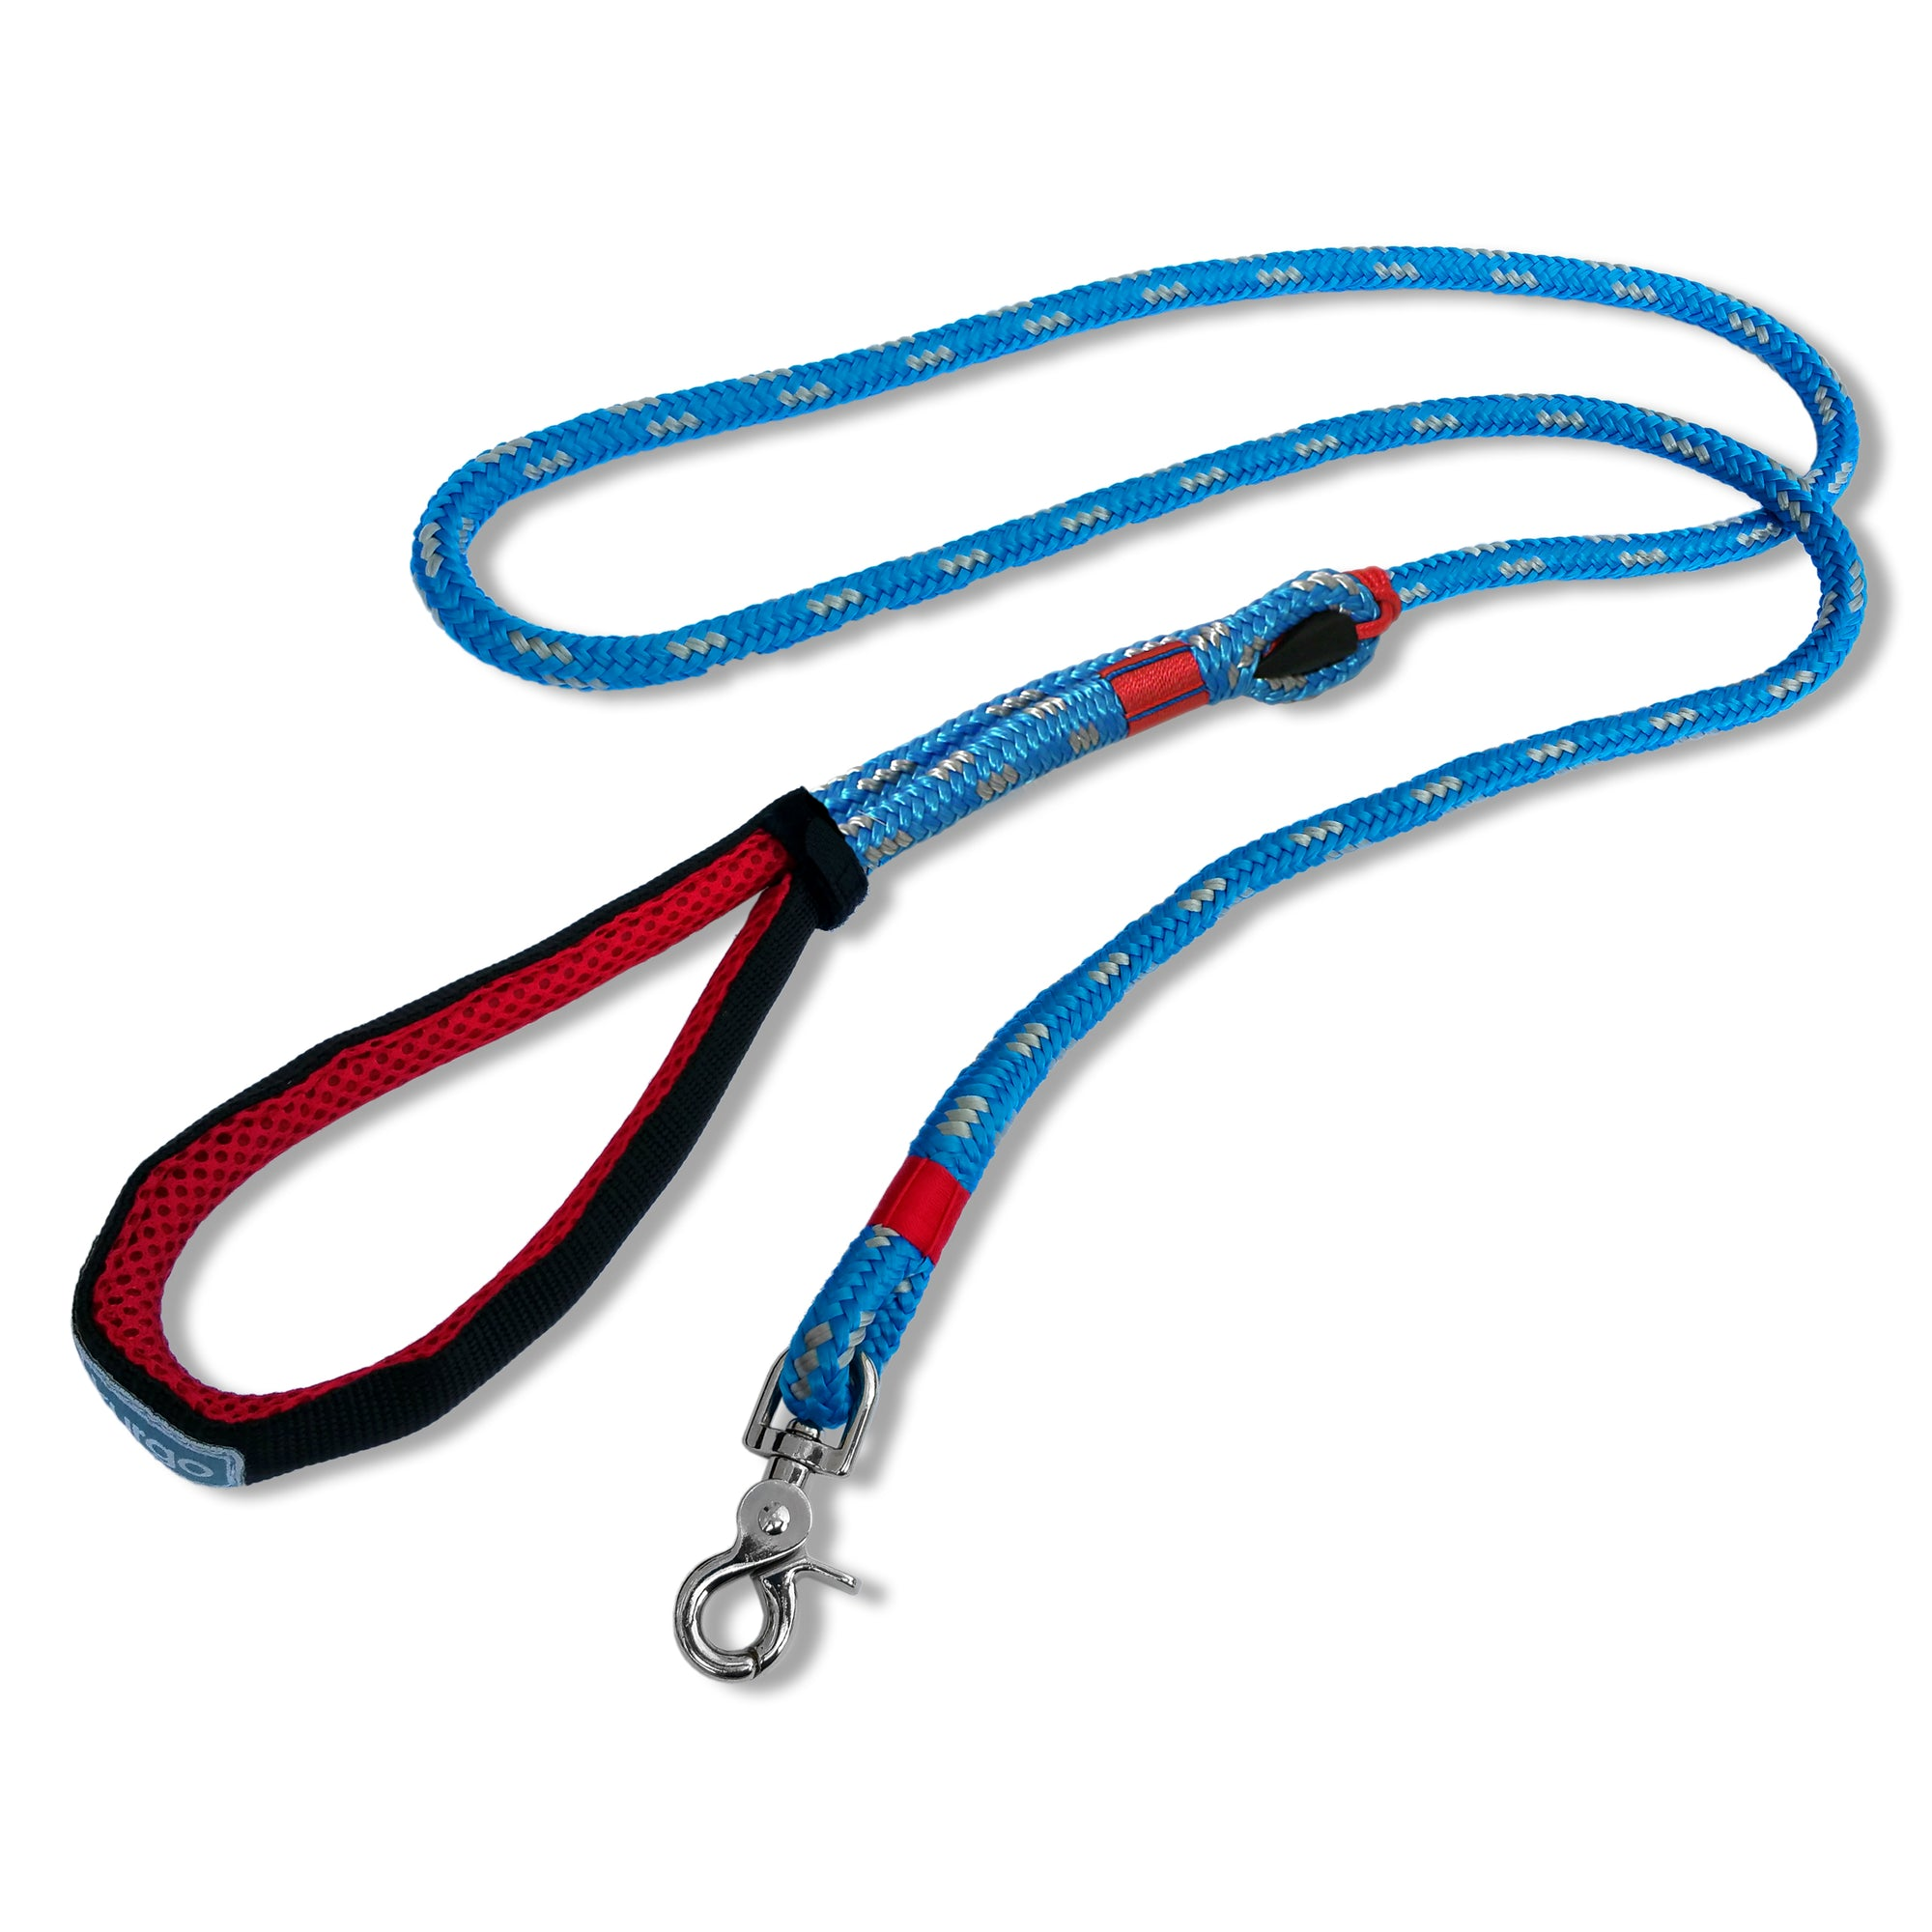 Kurgo Multi Purpose Ascender Dog Leash